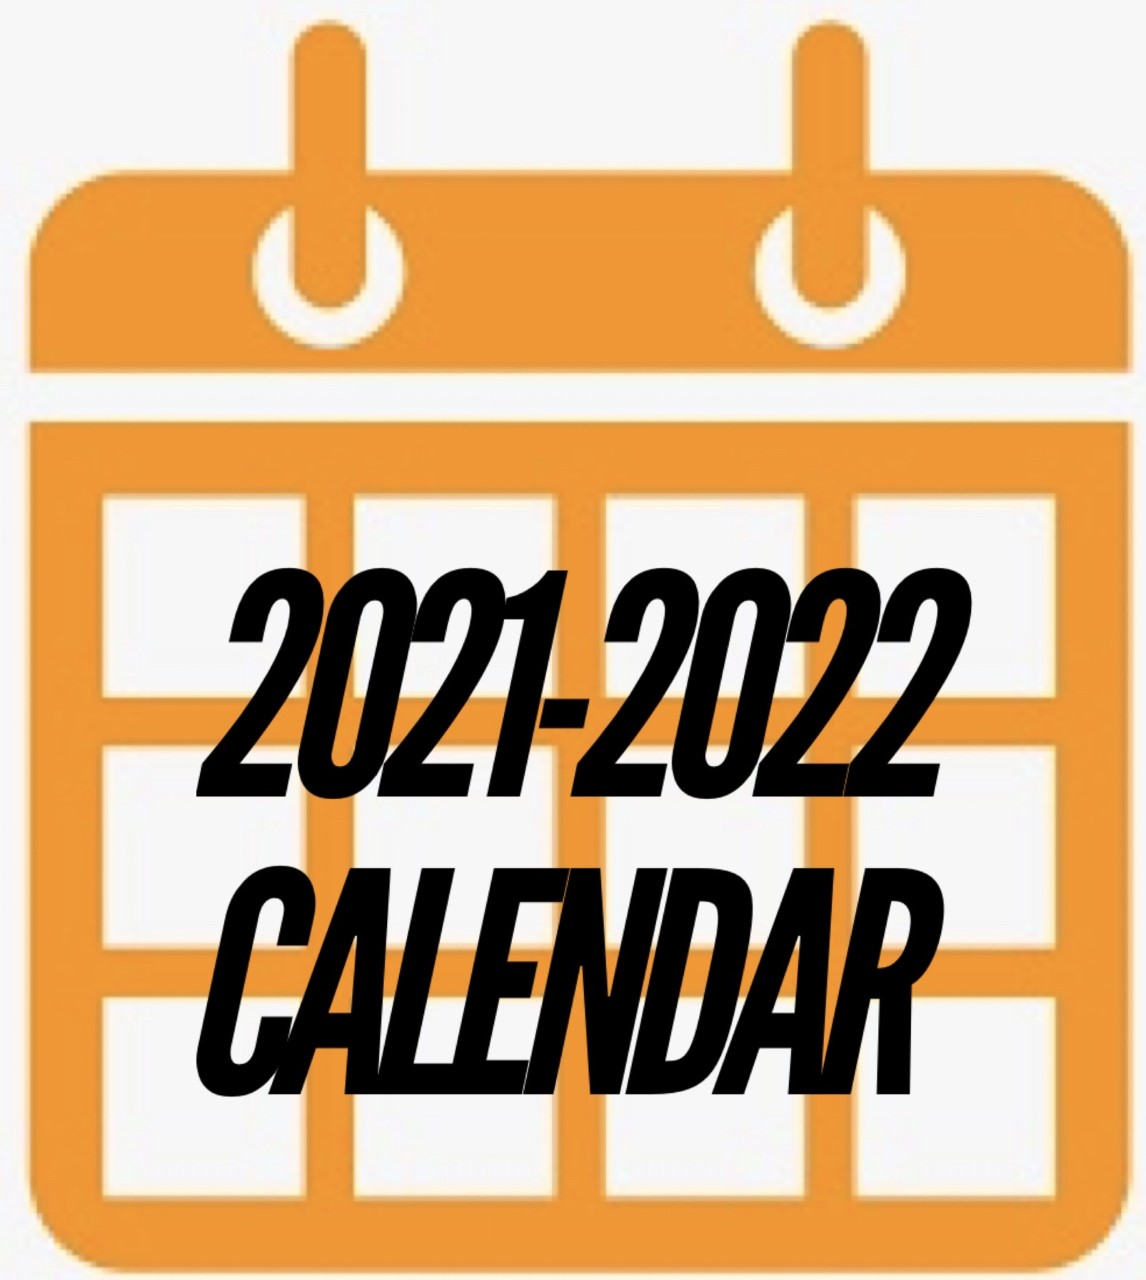 2021-2022 school year calendar (draft)